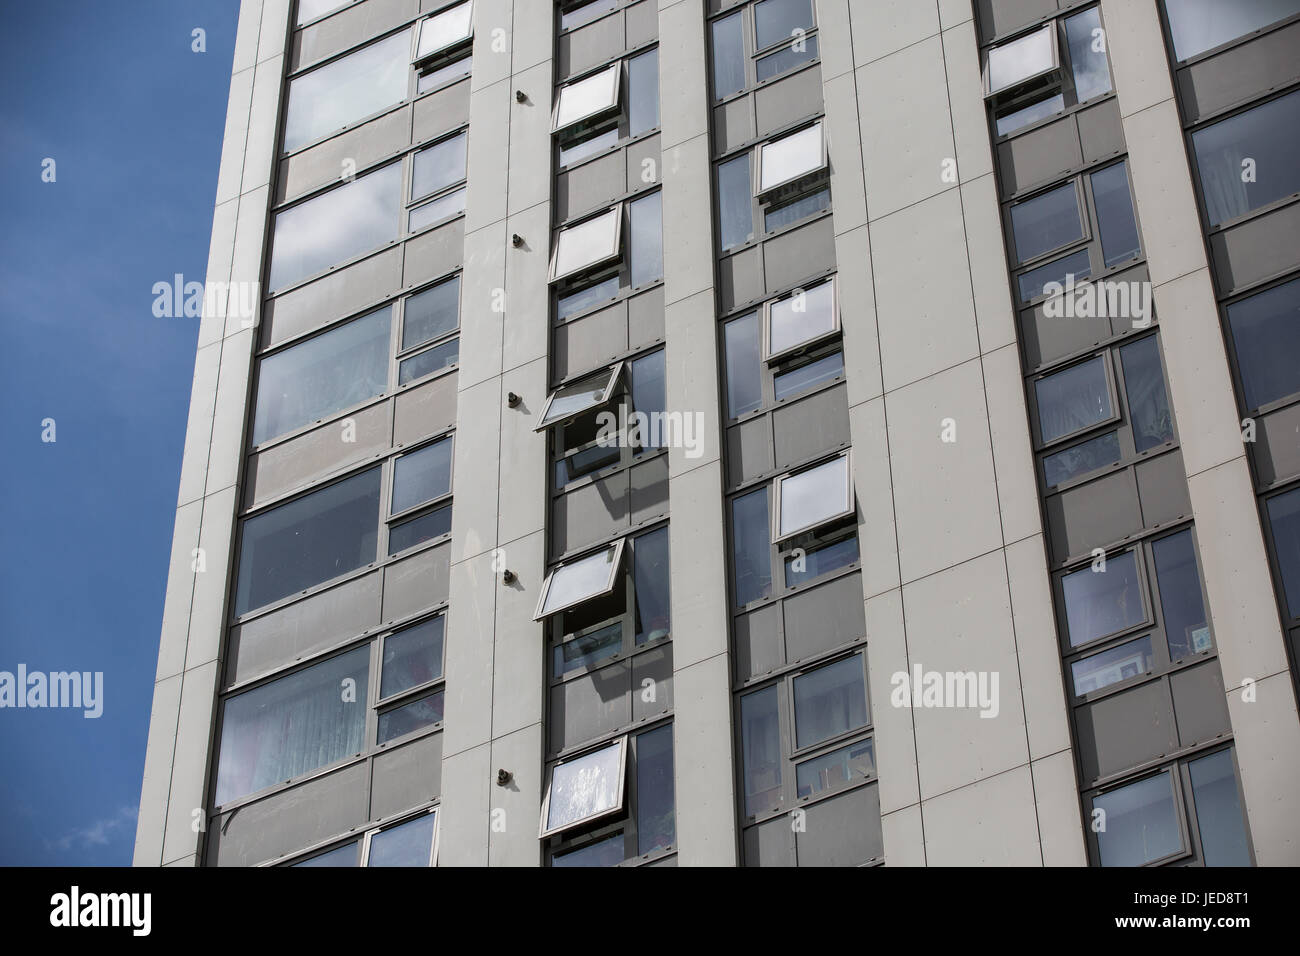 London, UK. 23rd June, 2017. Cladding panels on Taplow Tower on the Chalcots Estate in Camden. 600 households in - Stock Image